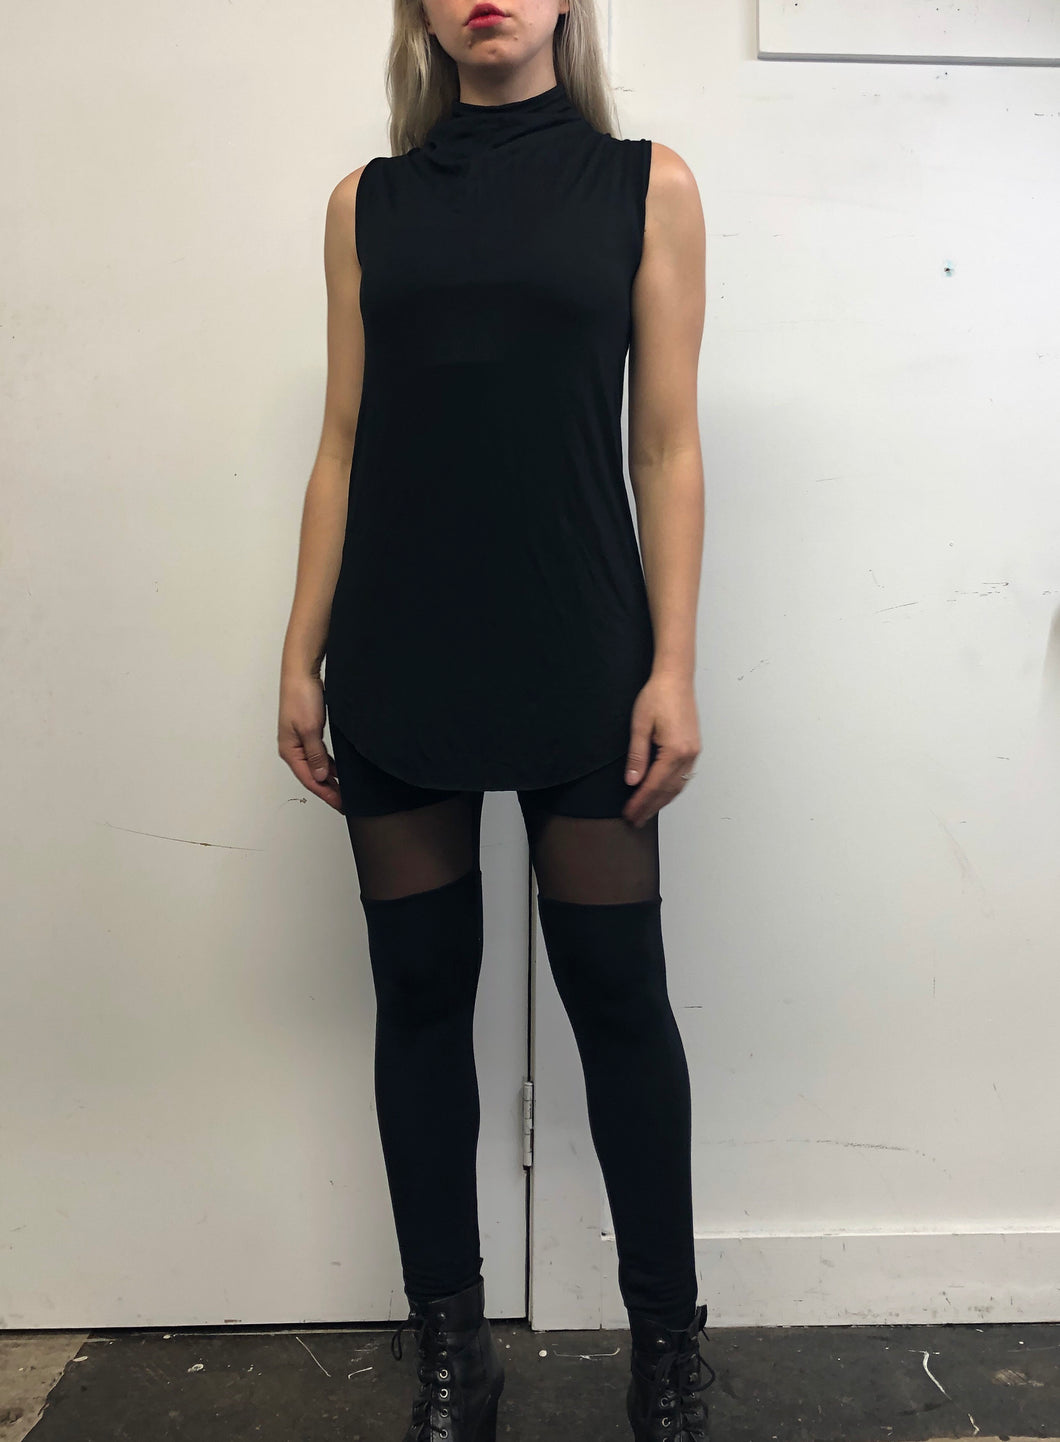 Sample Sale Day Two: High Cowl Collar Long Tank (L)